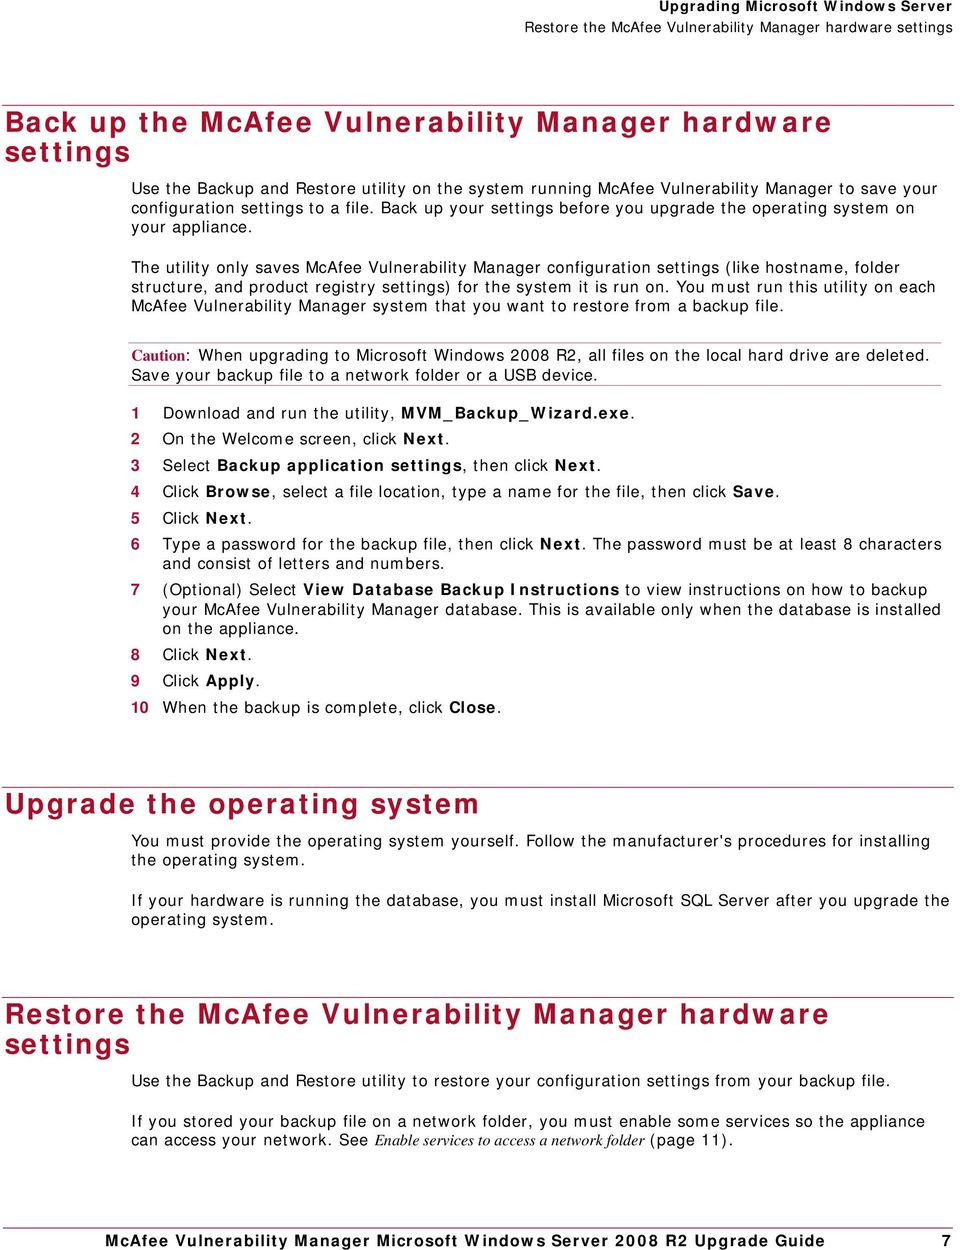 The utility only saves McAfee Vulnerability Manager configuration settings (like hostname, folder structure, and product registry settings) for the system it is run on.